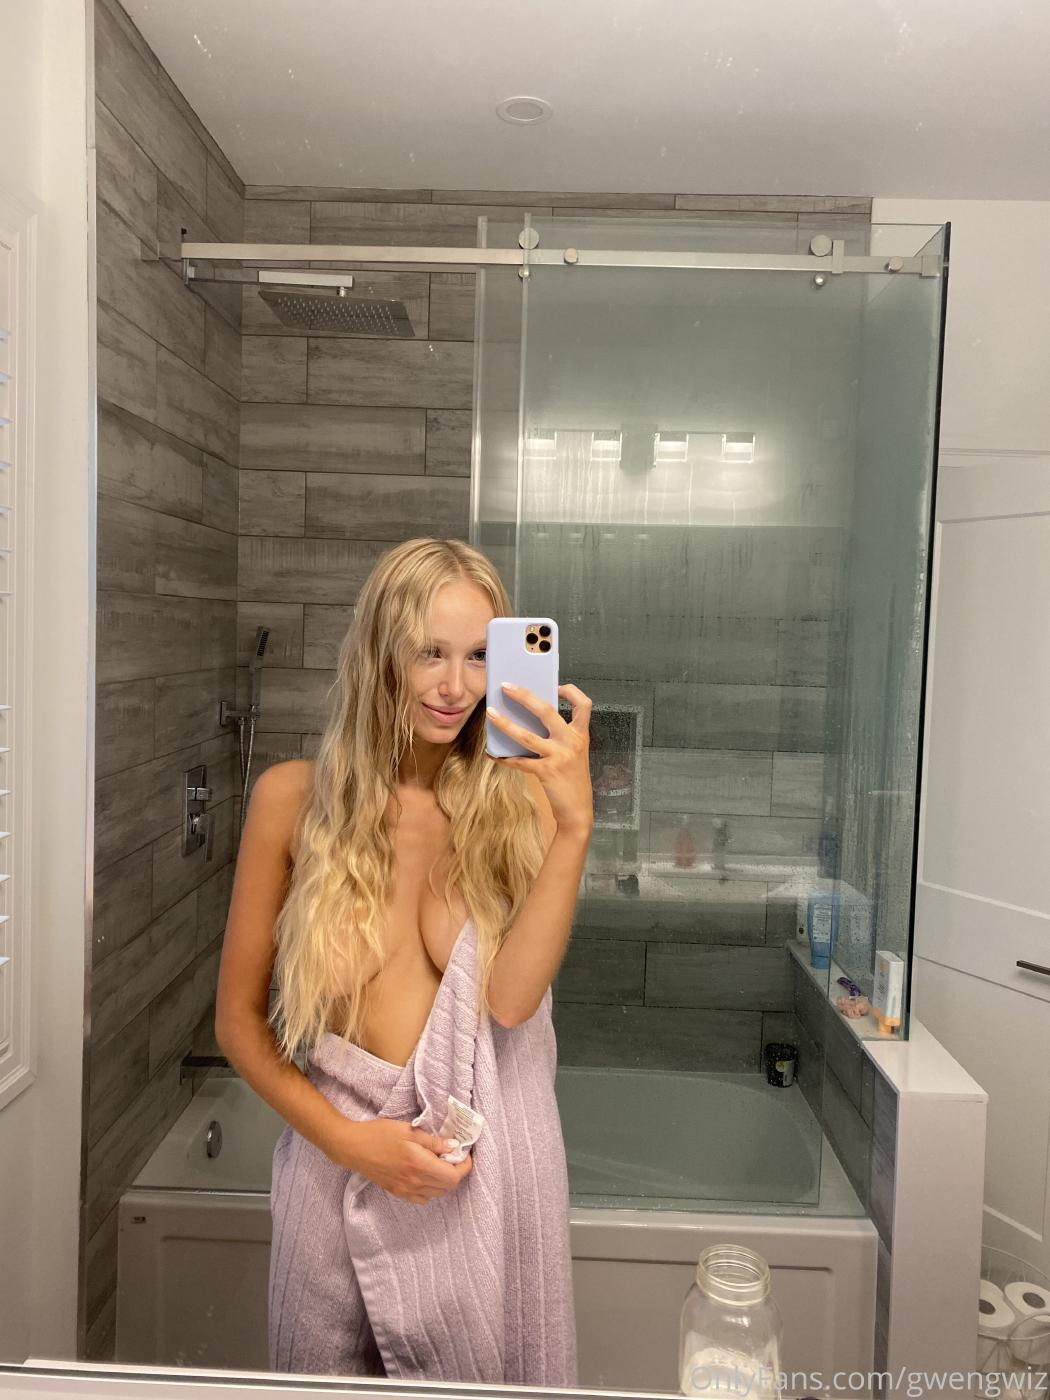 Gwengwiz Nude Onlyfans Collection Leaked 0006